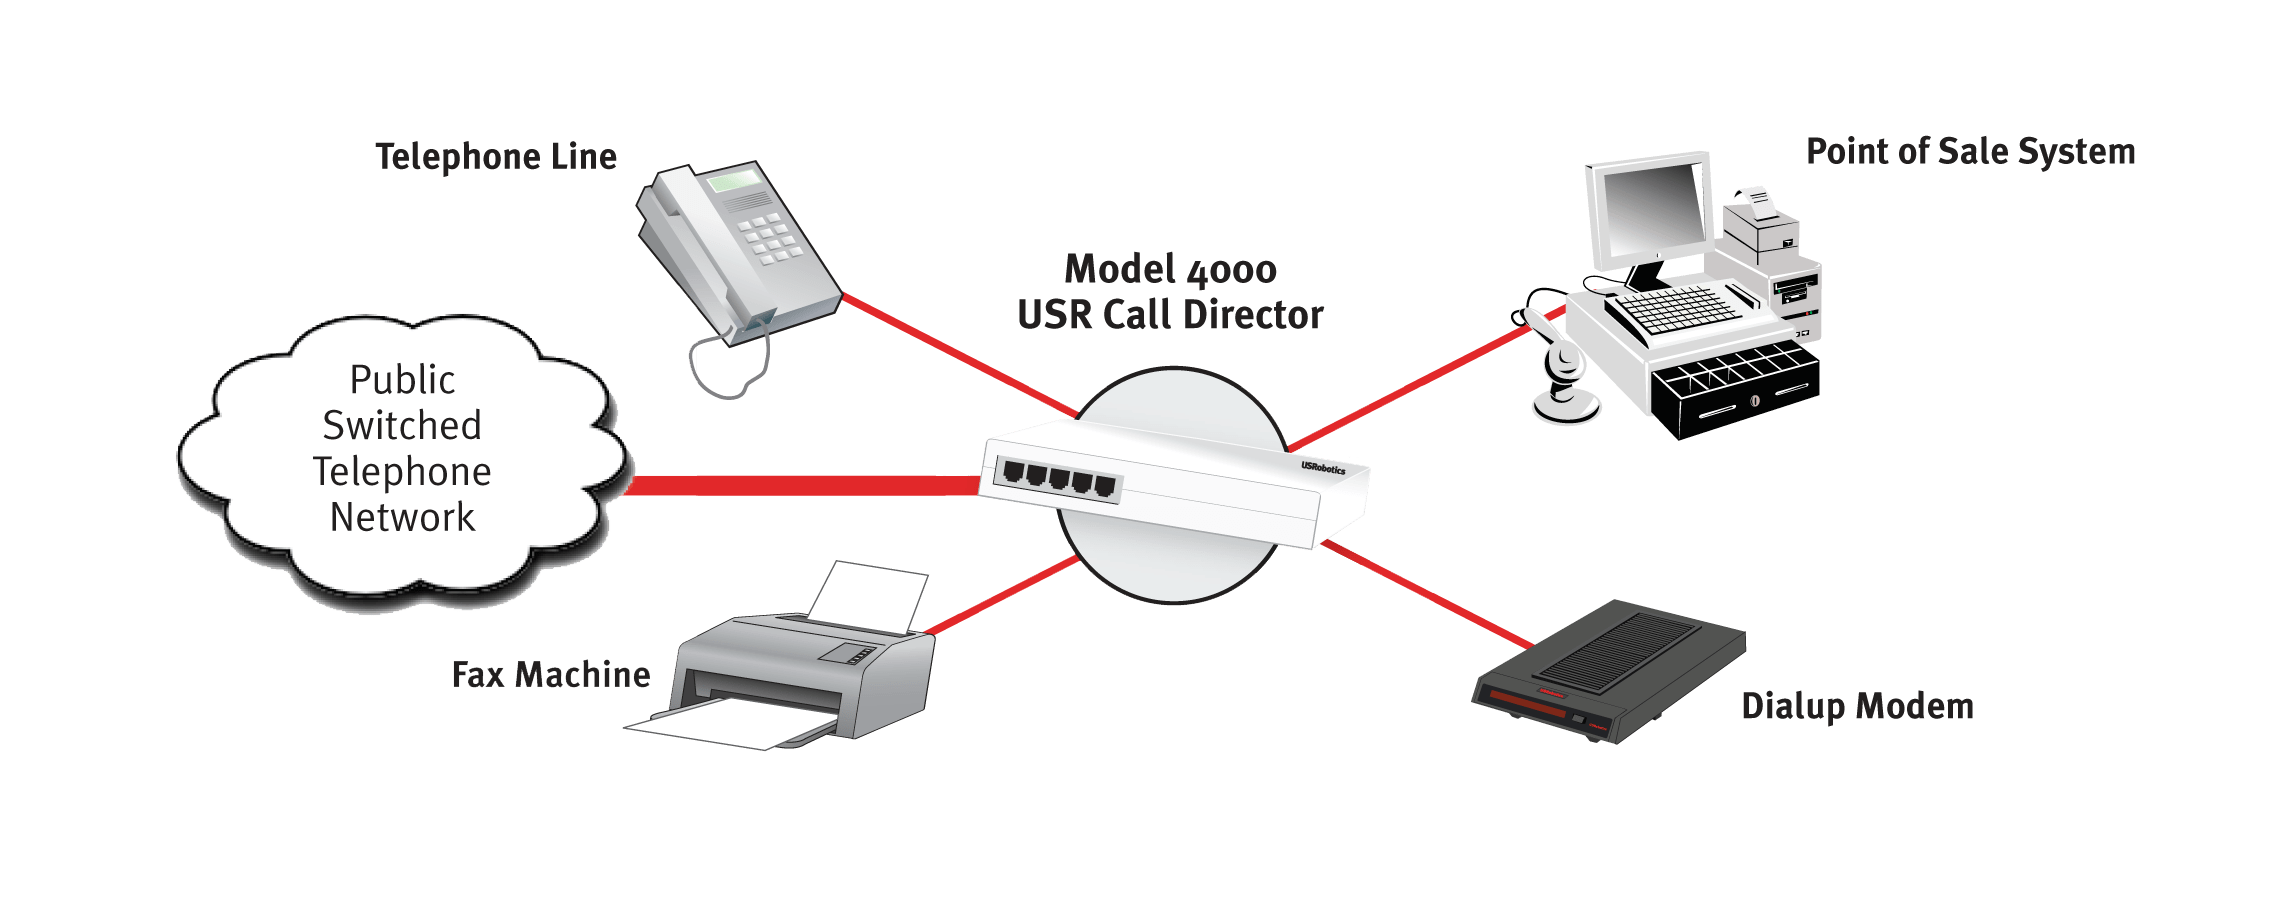 Usrobotics Telephony Peripherals And Accessories Usr